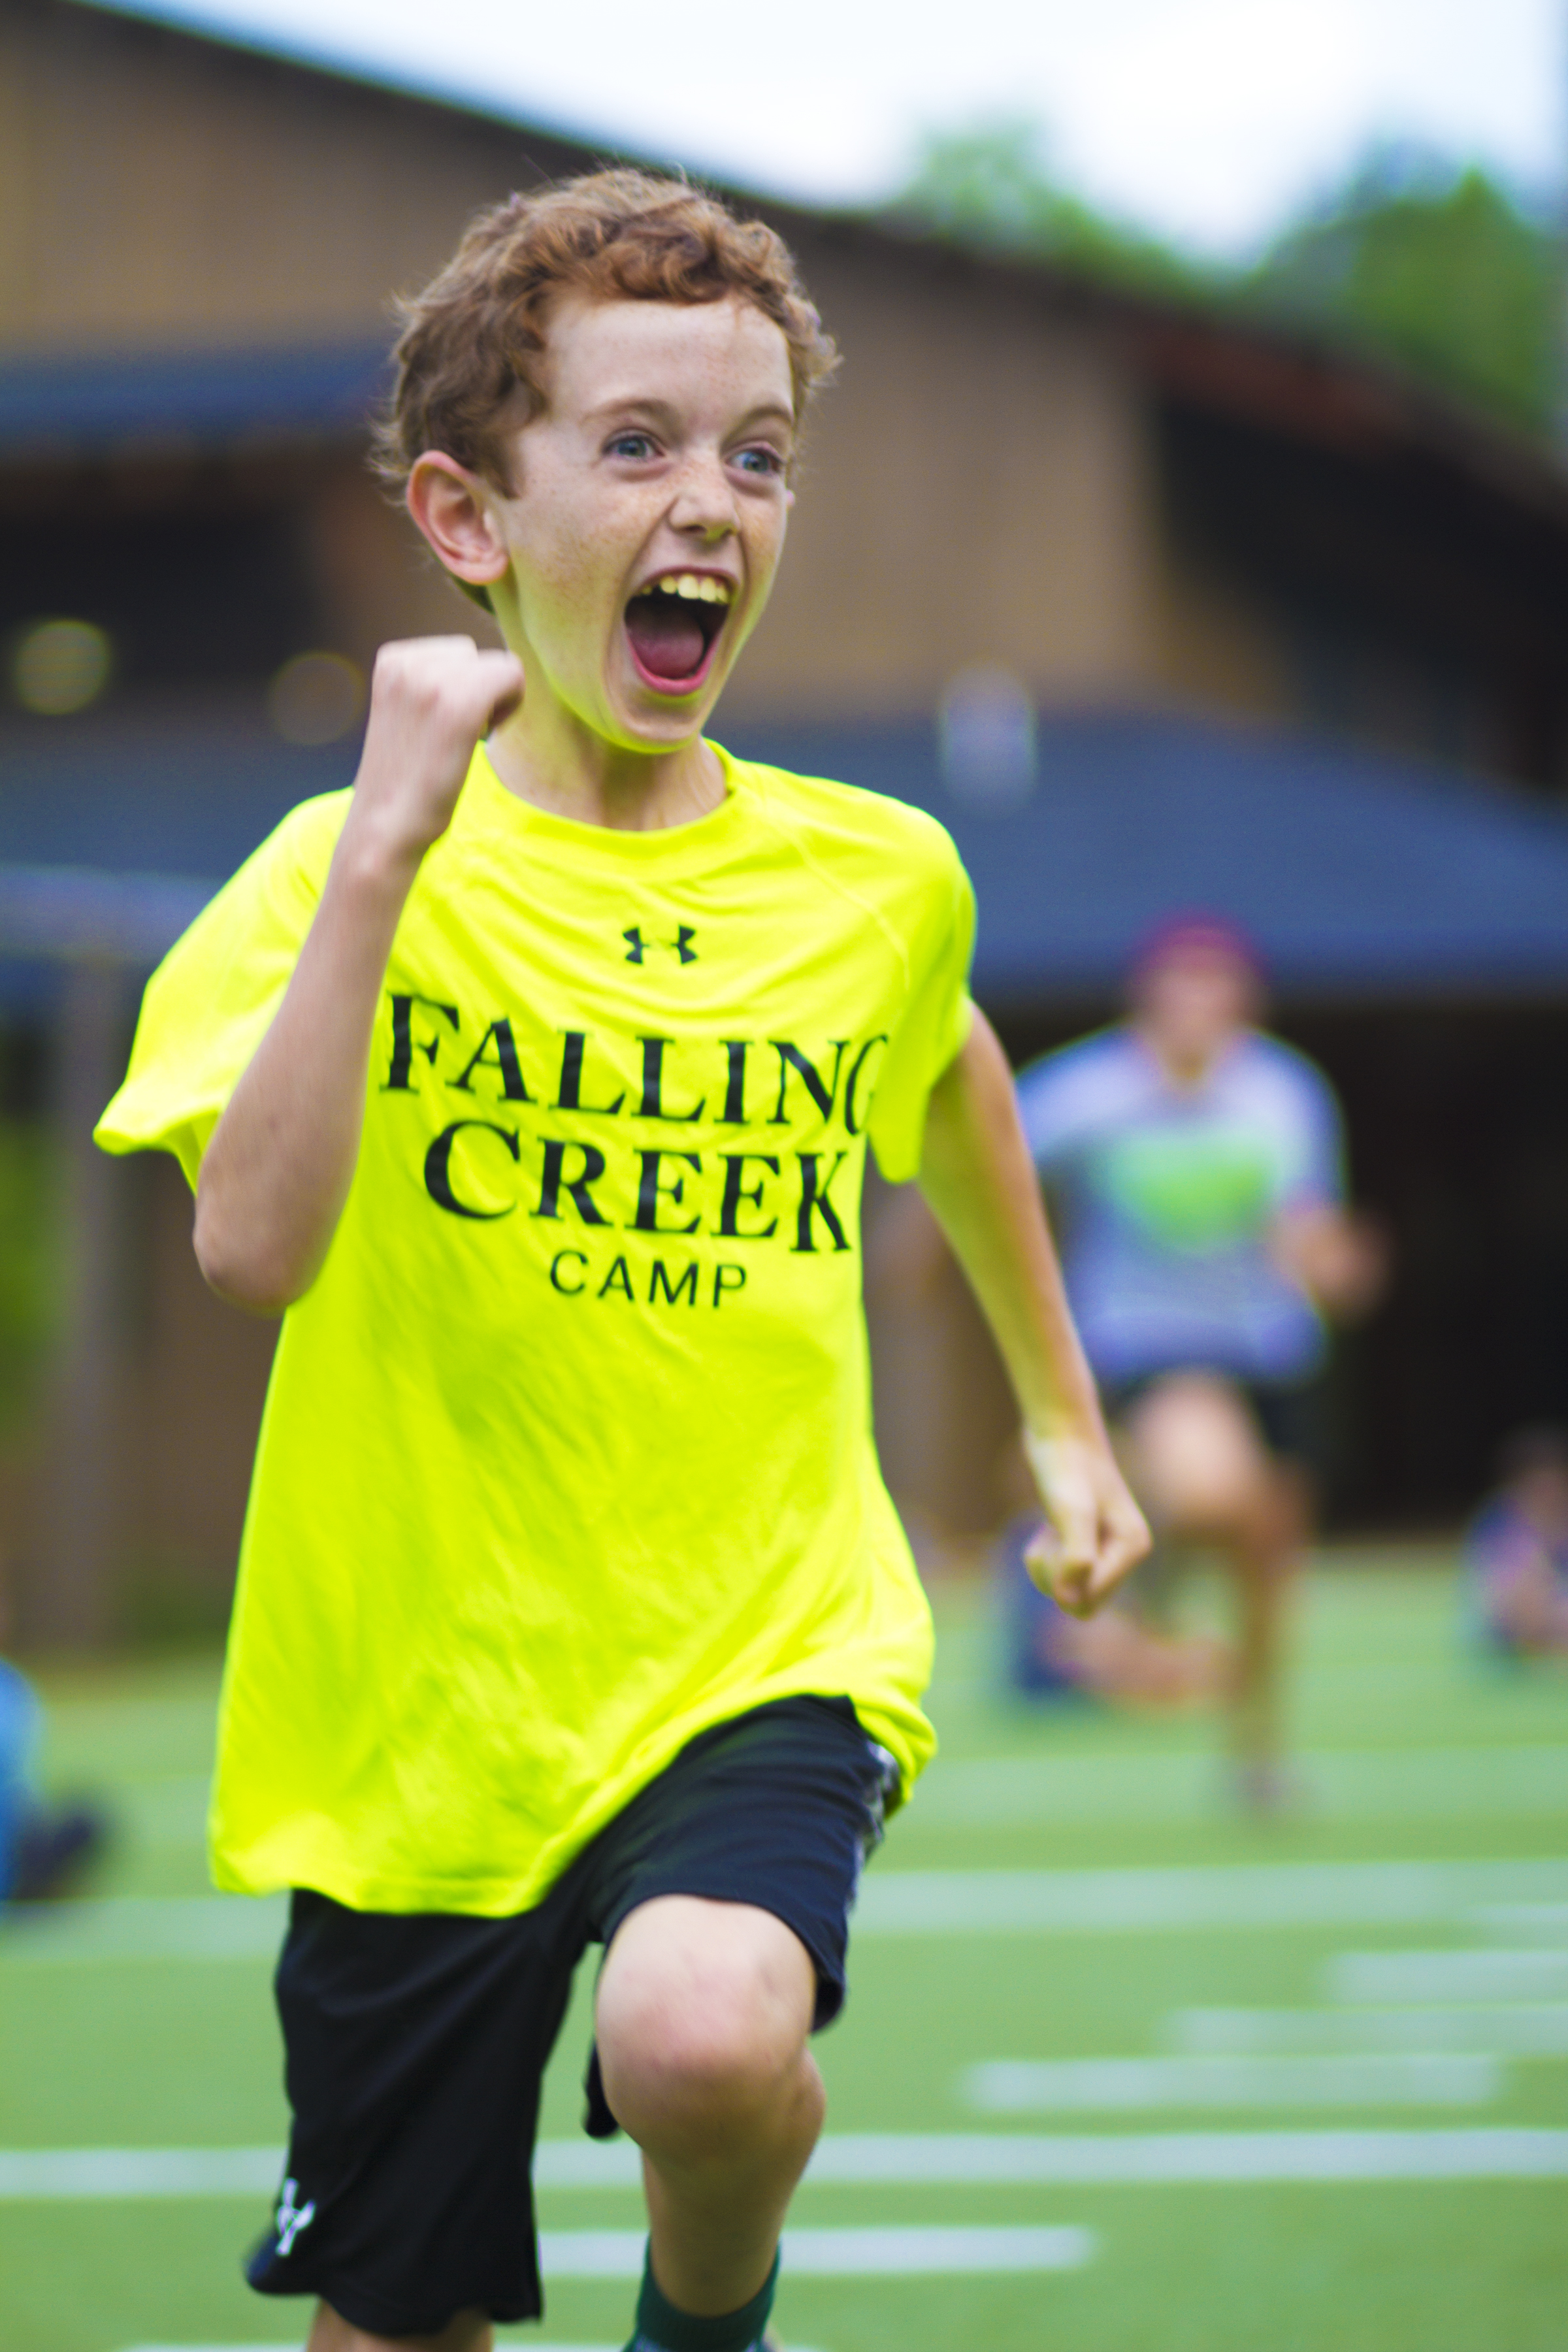 Camper running with excitement on field during evening program.